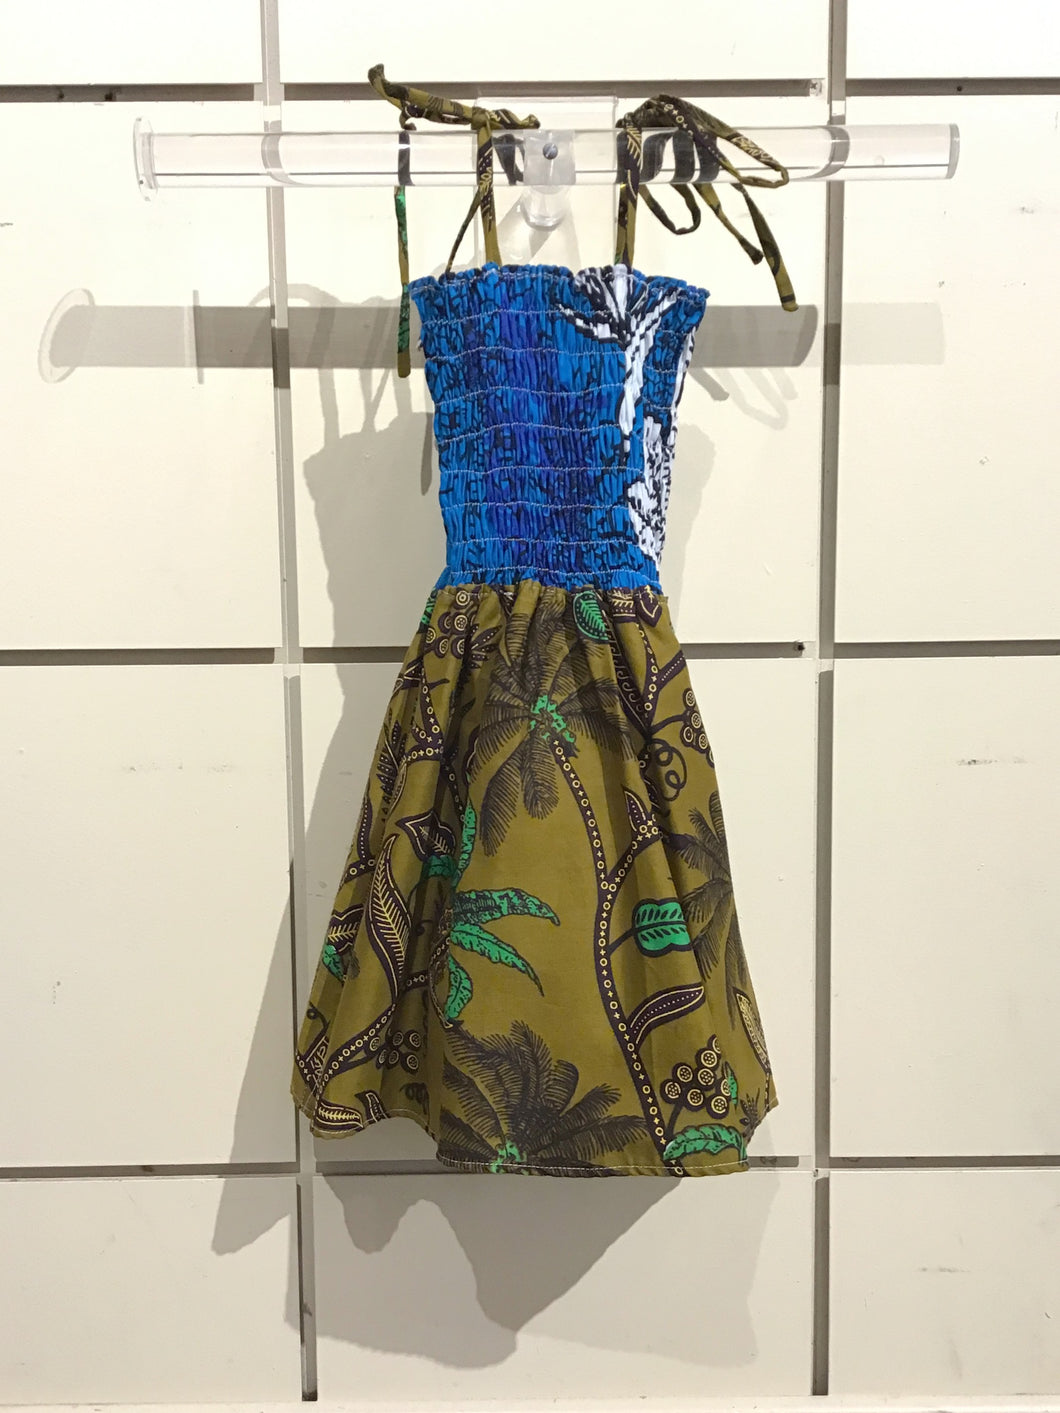 African Print Children's Dress - Toddler size 1-2